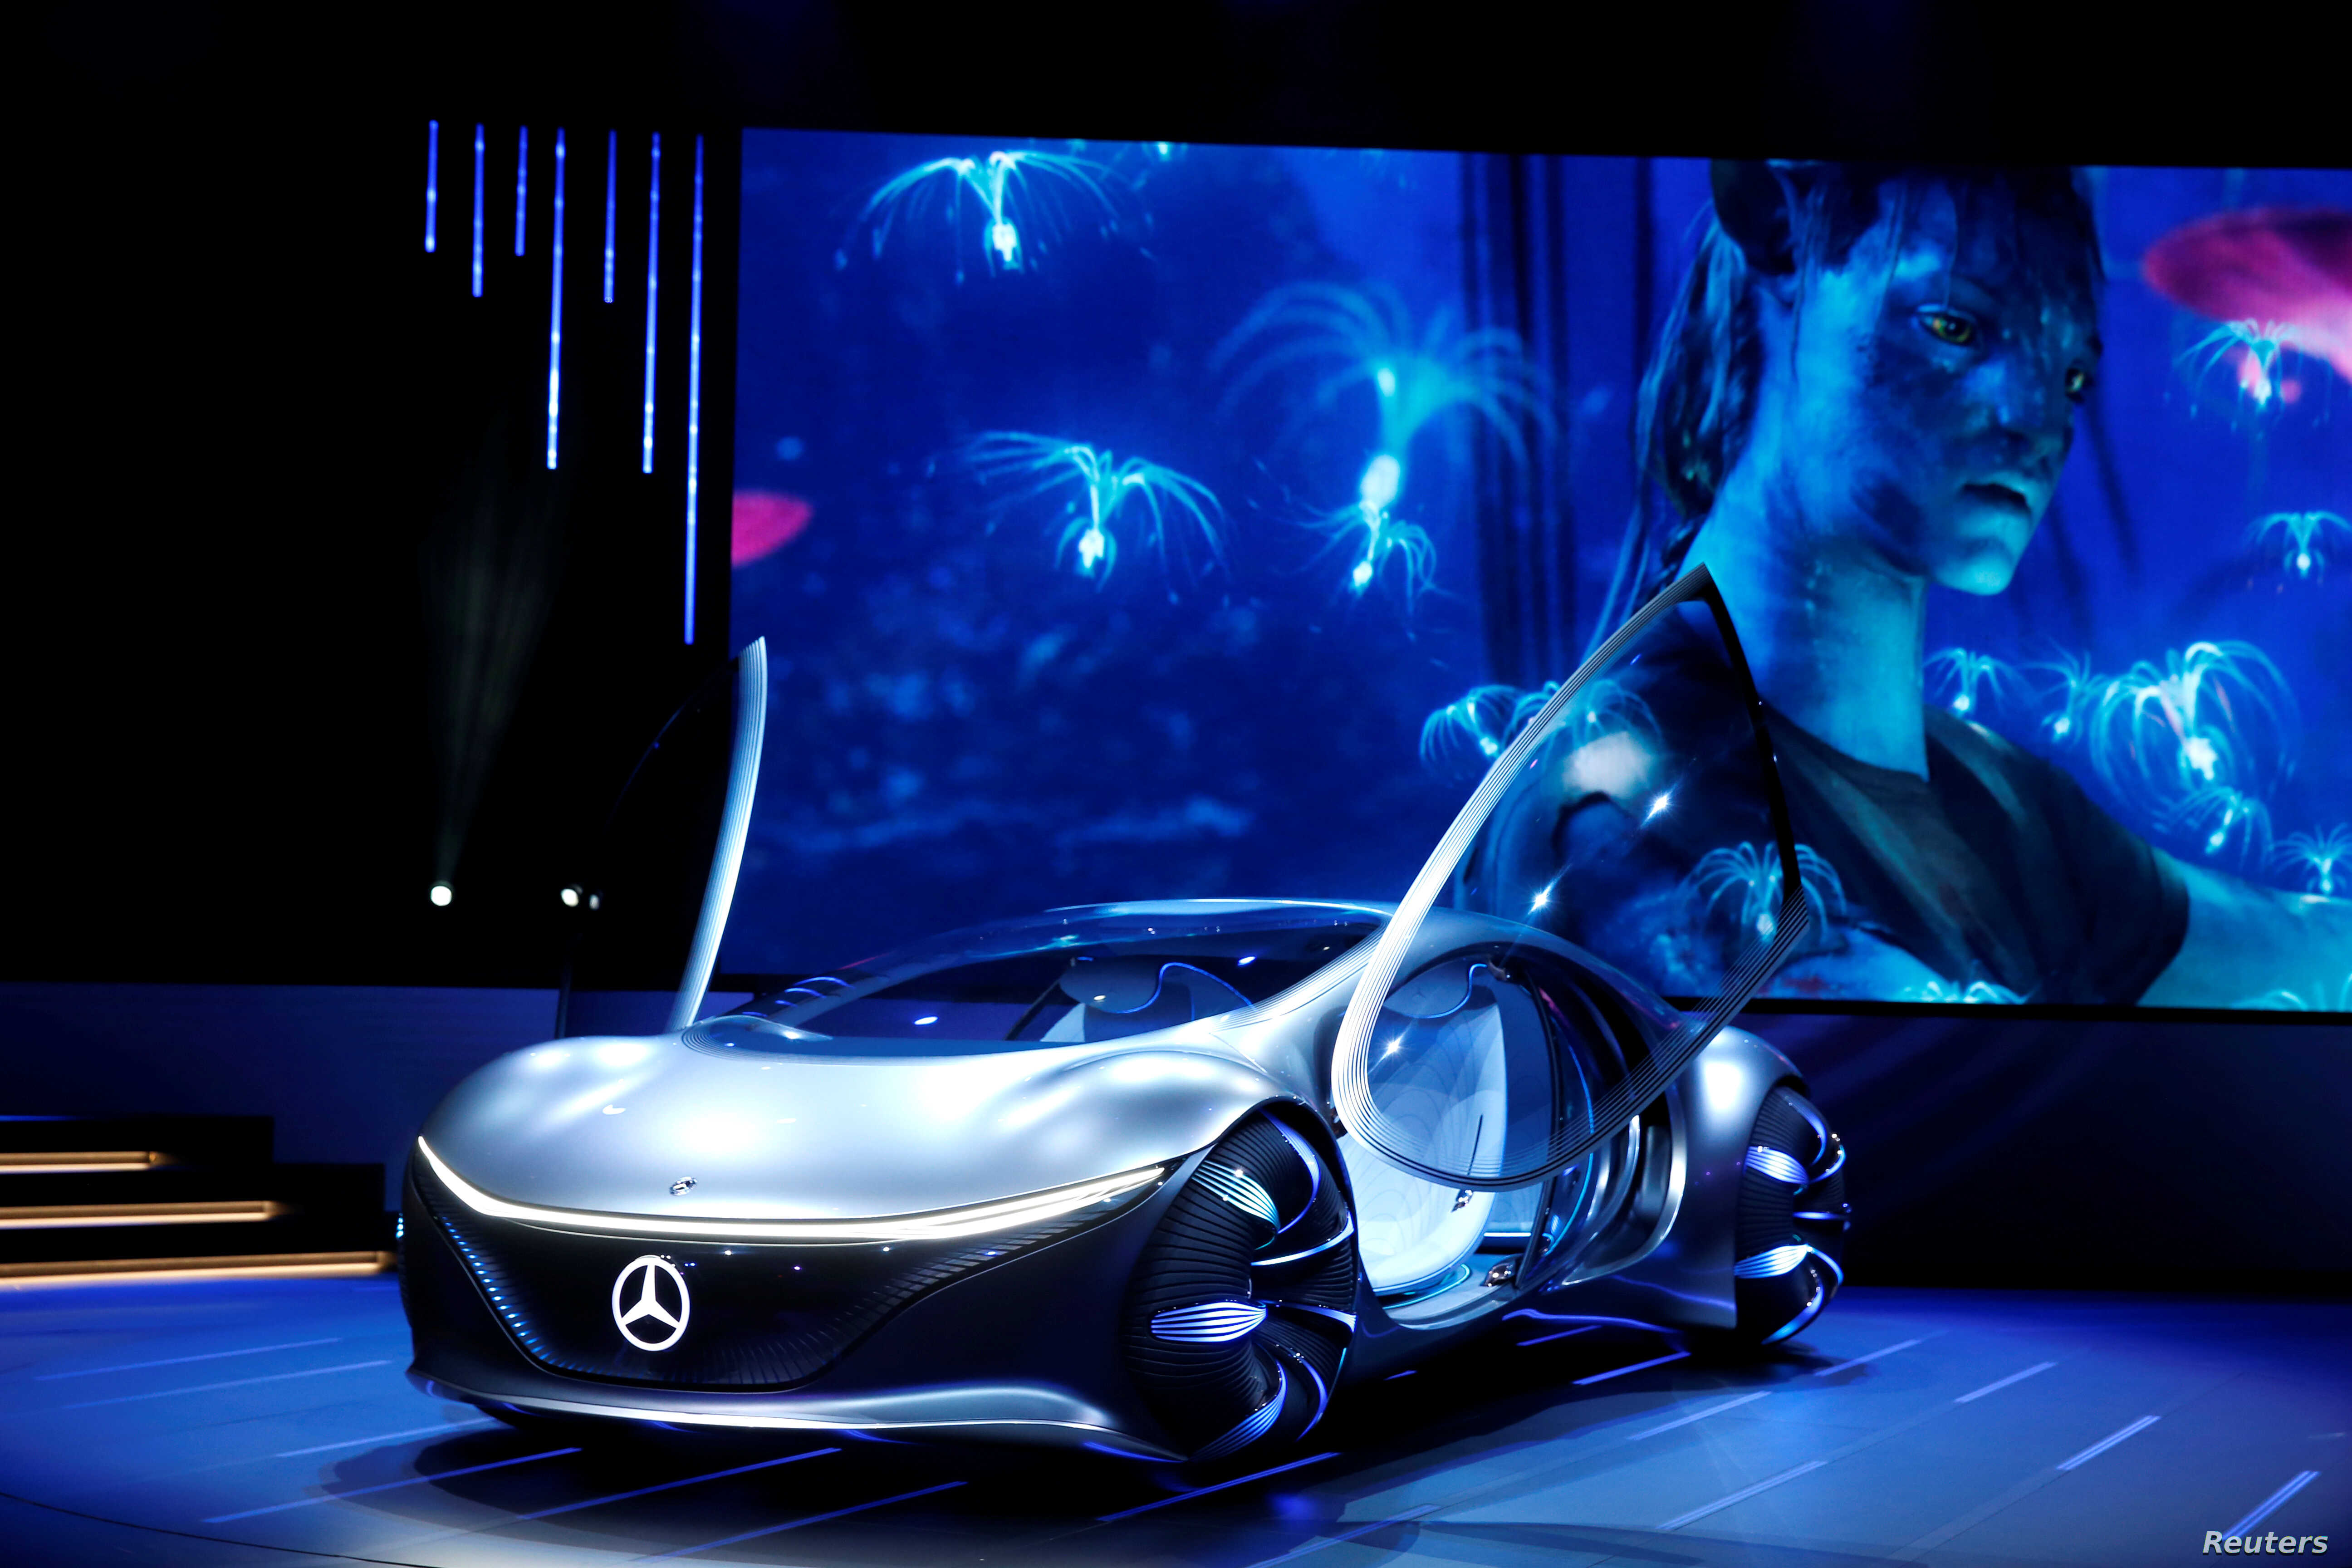 The Mercedes-Benz Vision AVTR concept car, inspired by the Avatar movie, is displayed during the 2020 CES in Las Vegas, Nevada, Jan. 6, 2020.